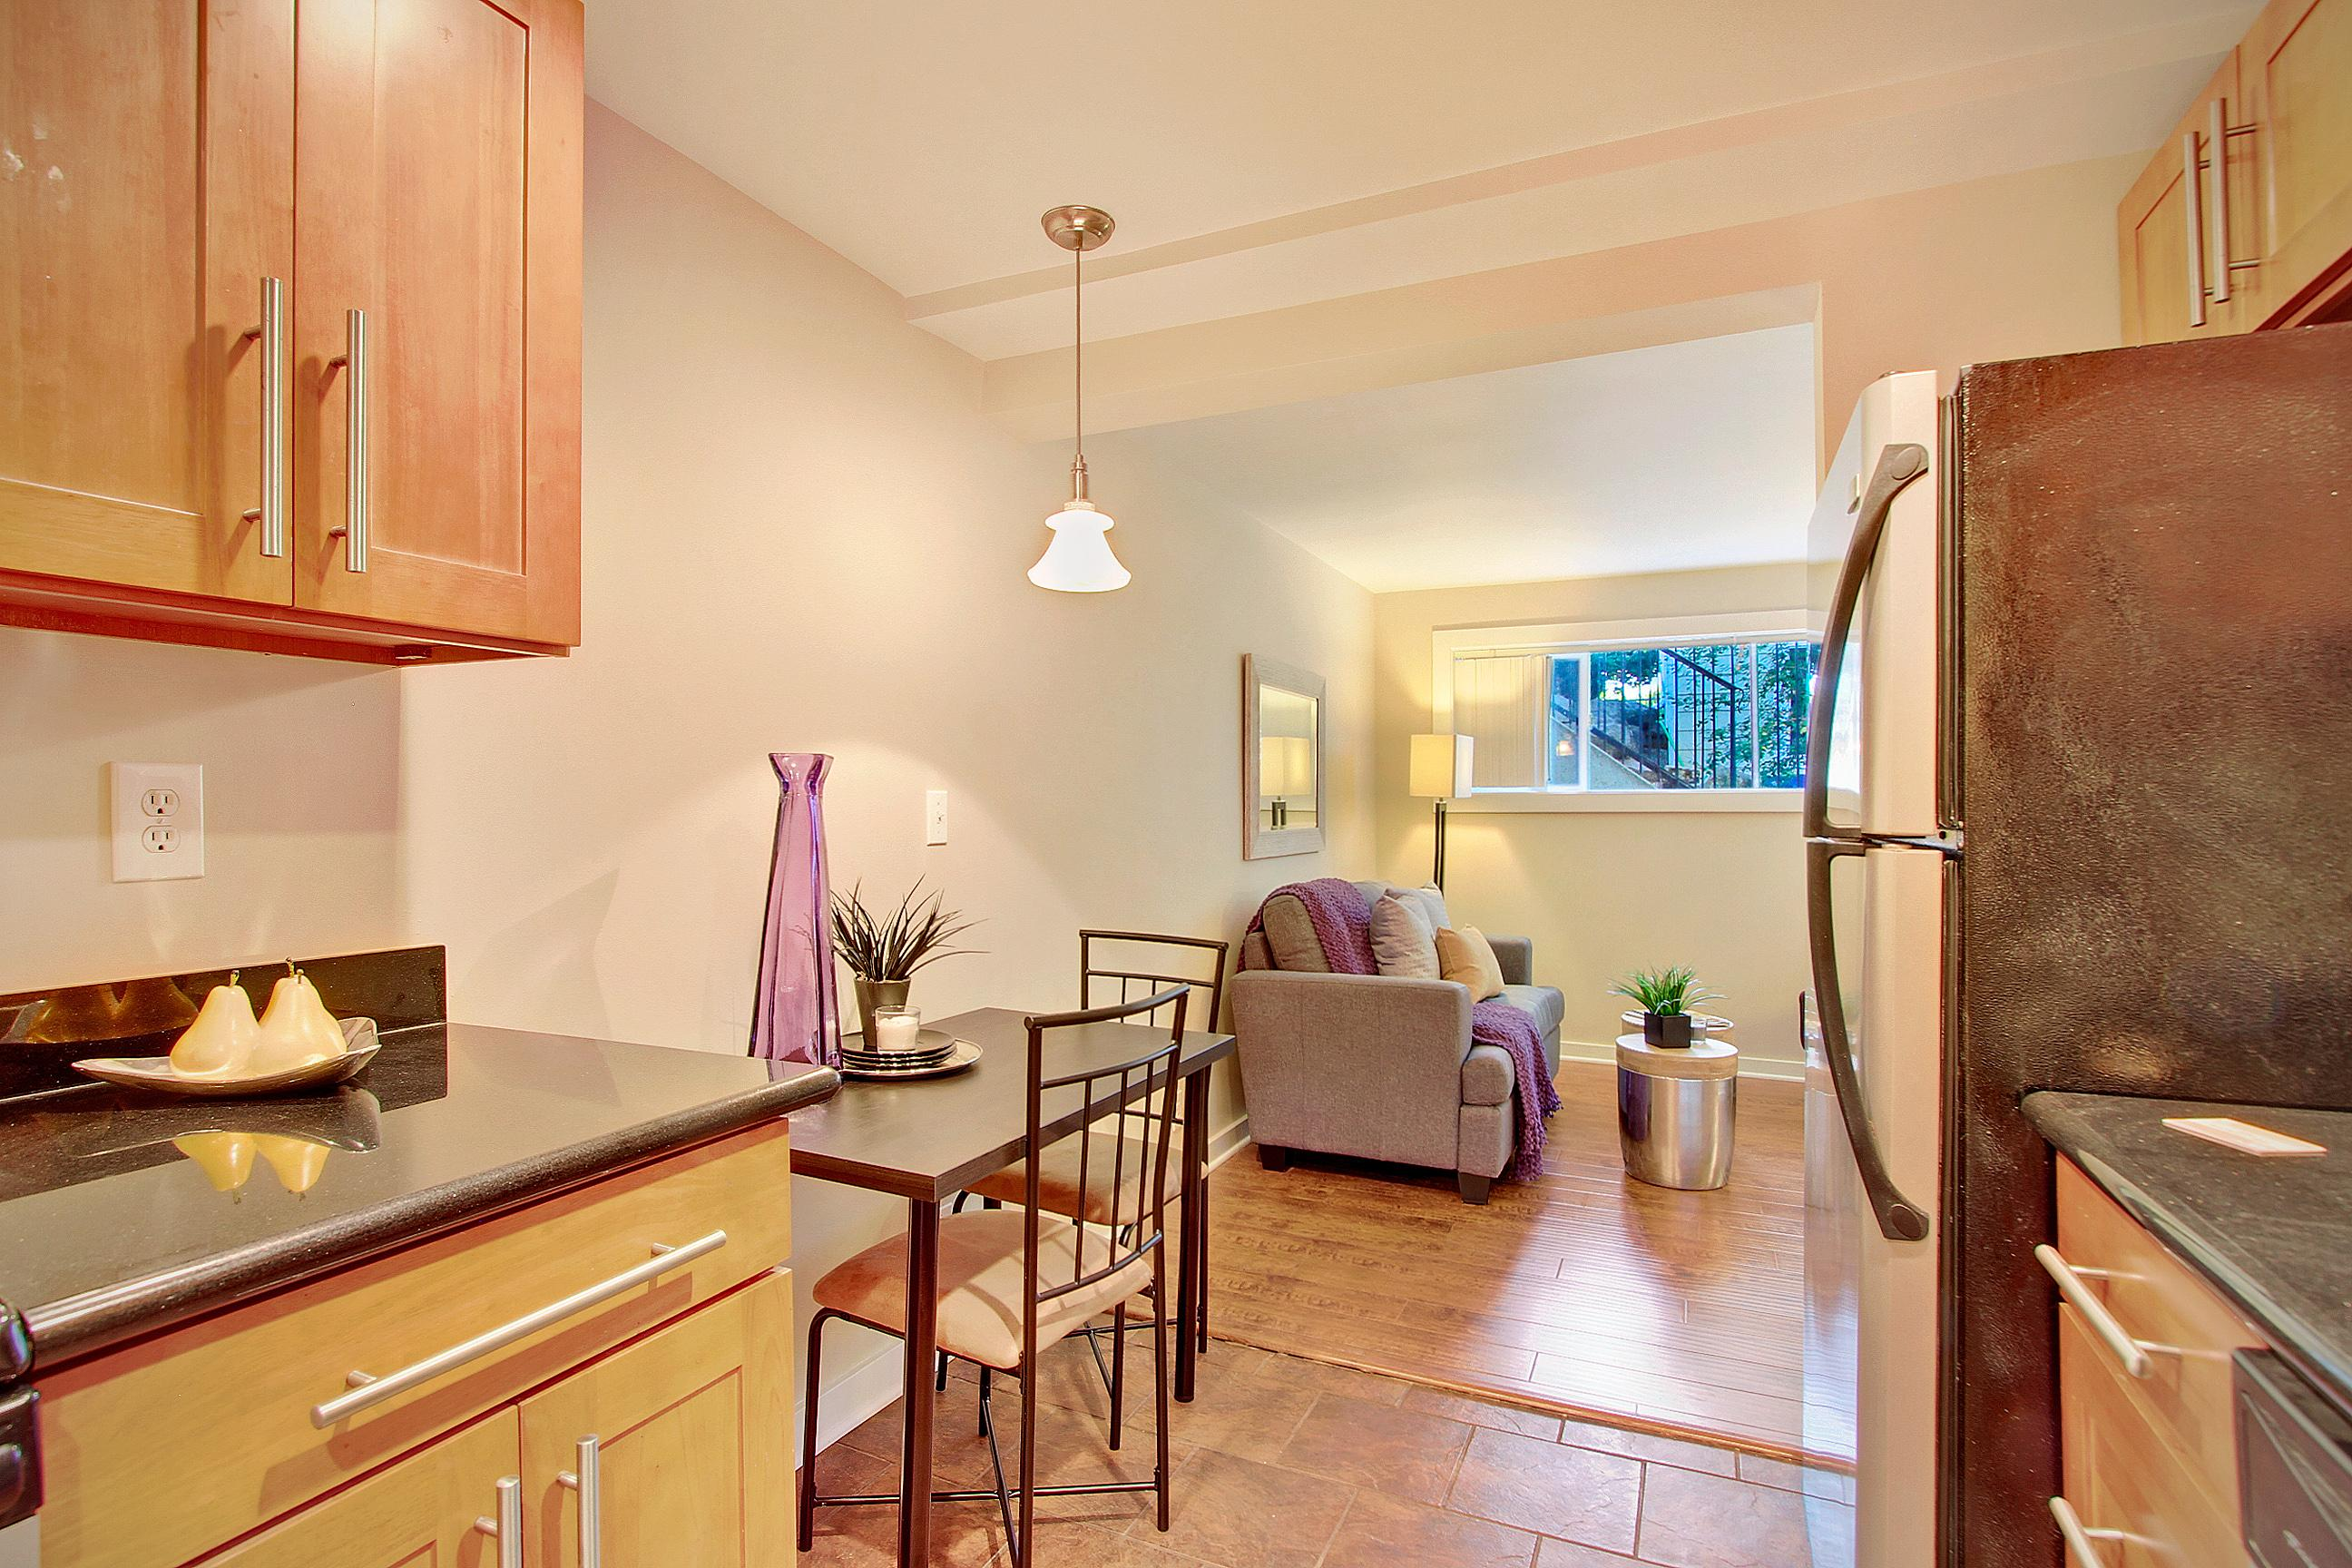 This Highland Park Area Condo is located at 9013 16th Ave SW and is going for $199,000. (Image: Windermere)